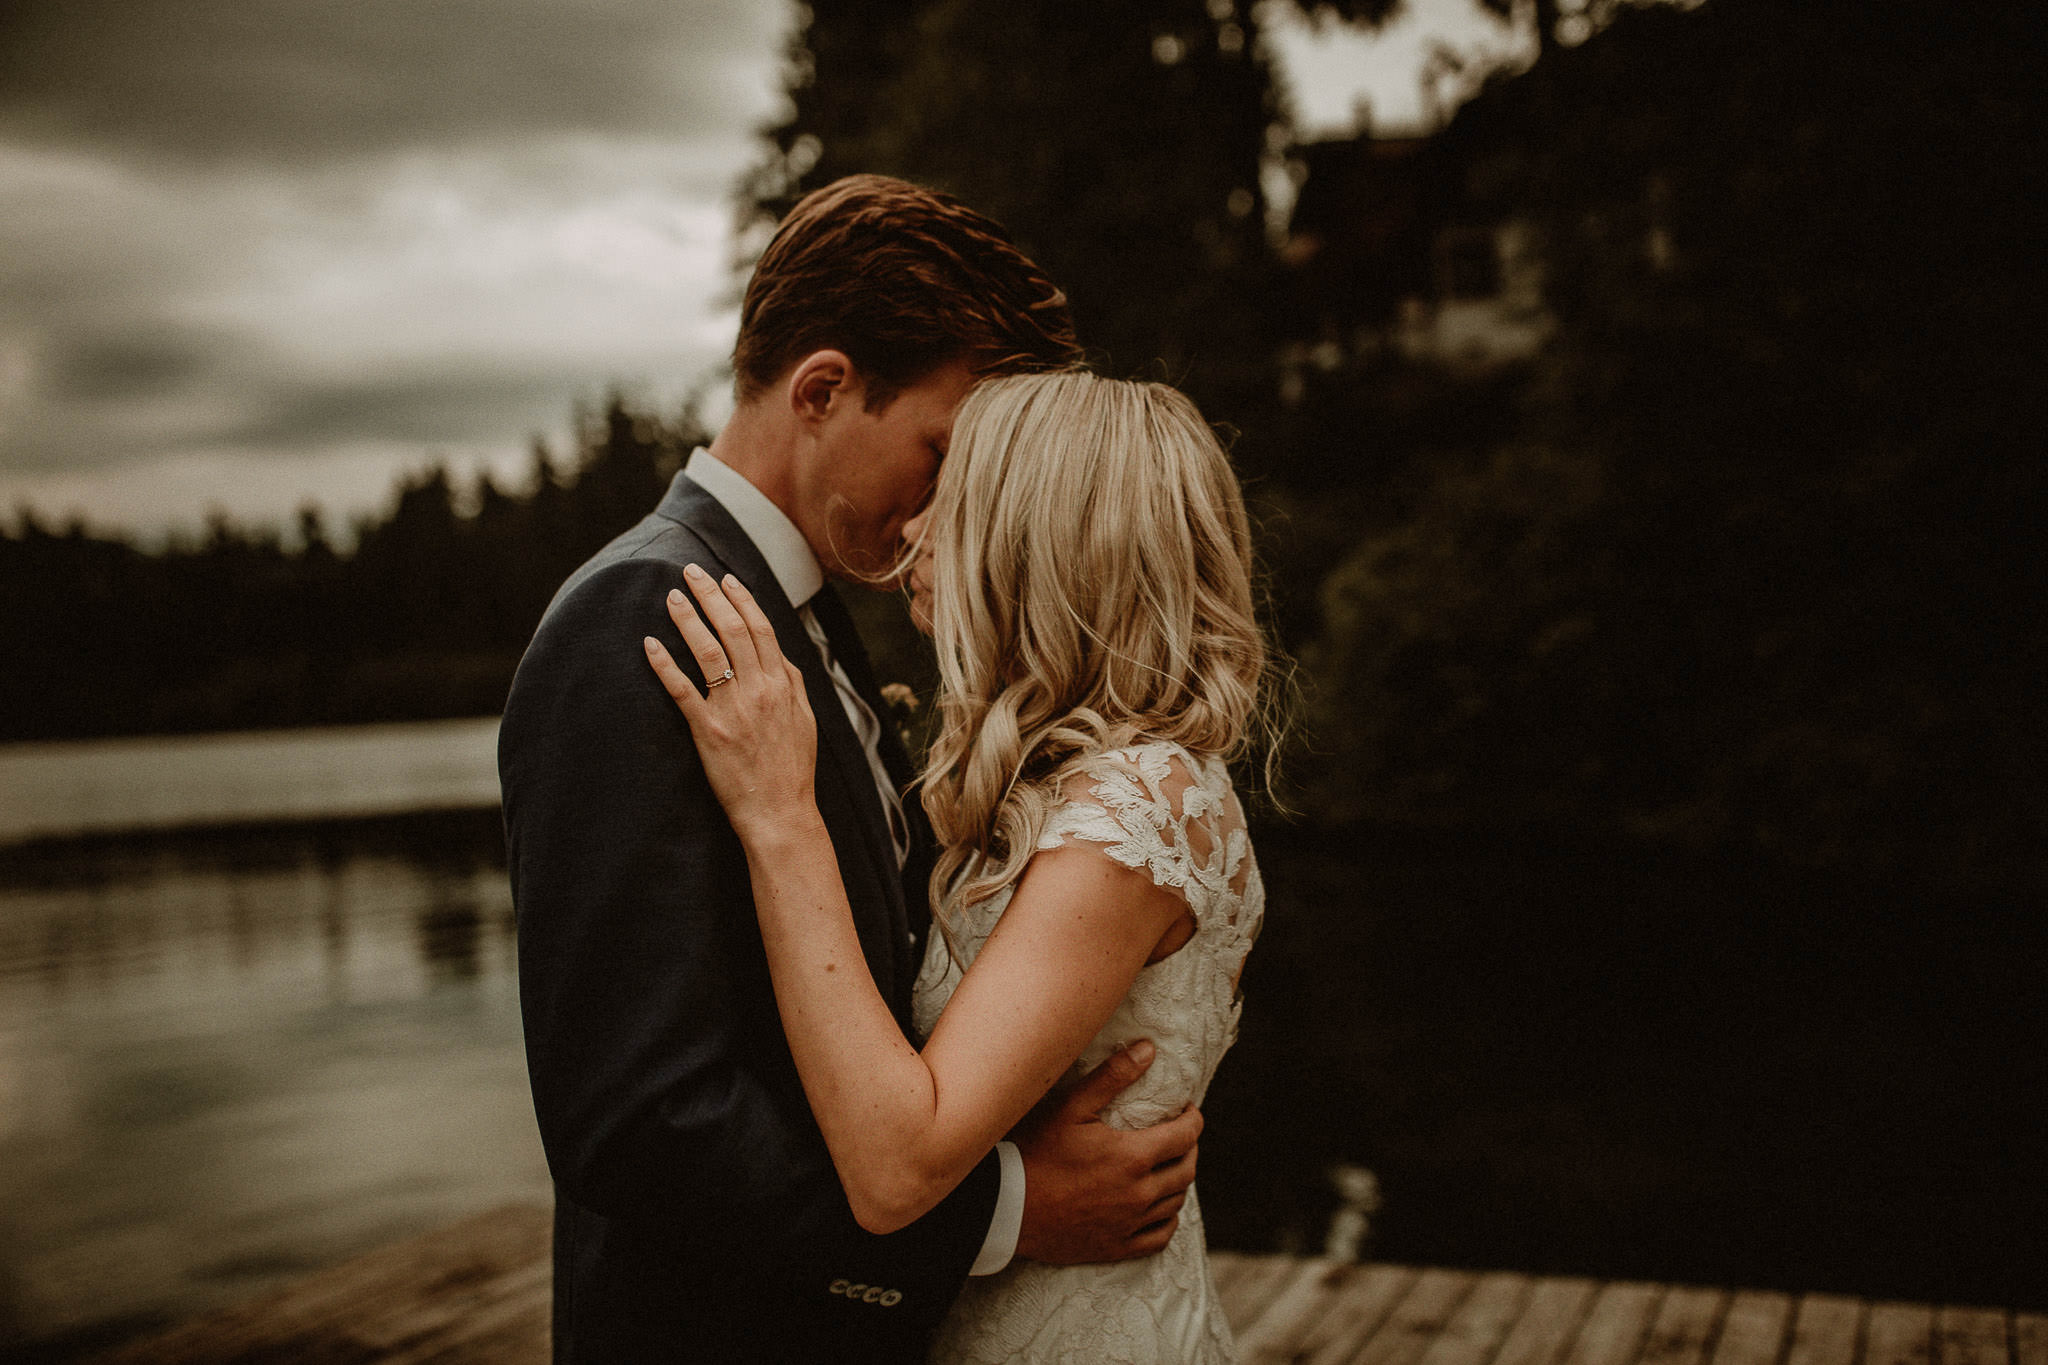 Berlin Wedding Photographer in Vancouver, Canada